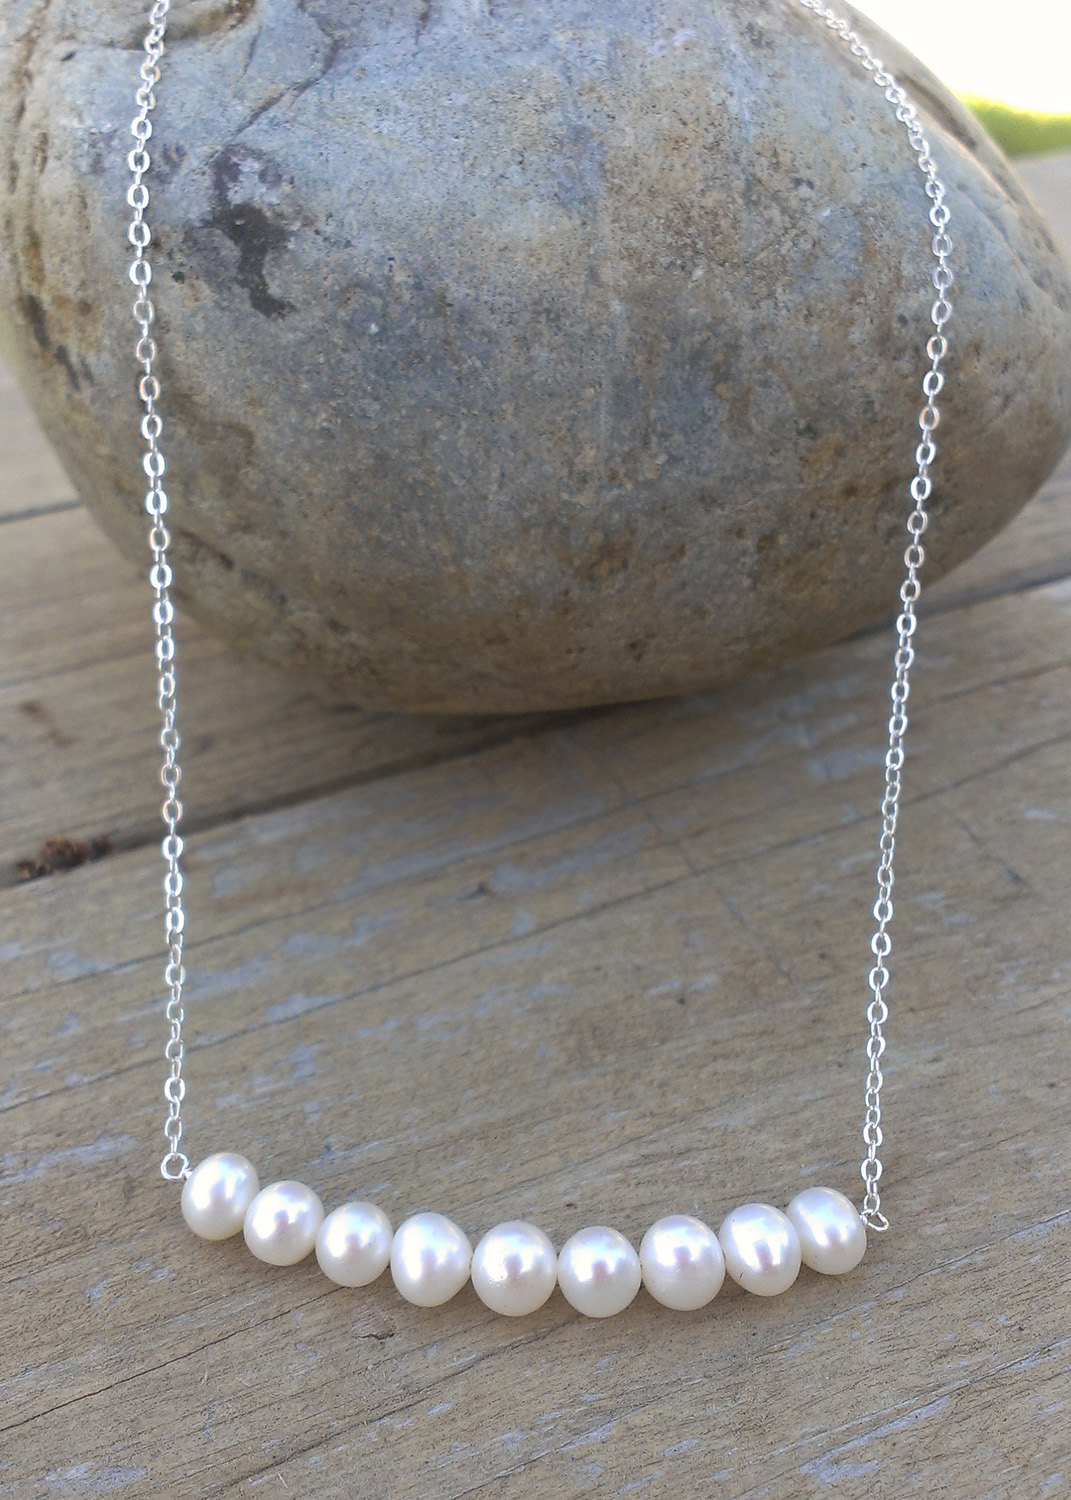 dainty pearl necklace 9 white freshwater pearls on